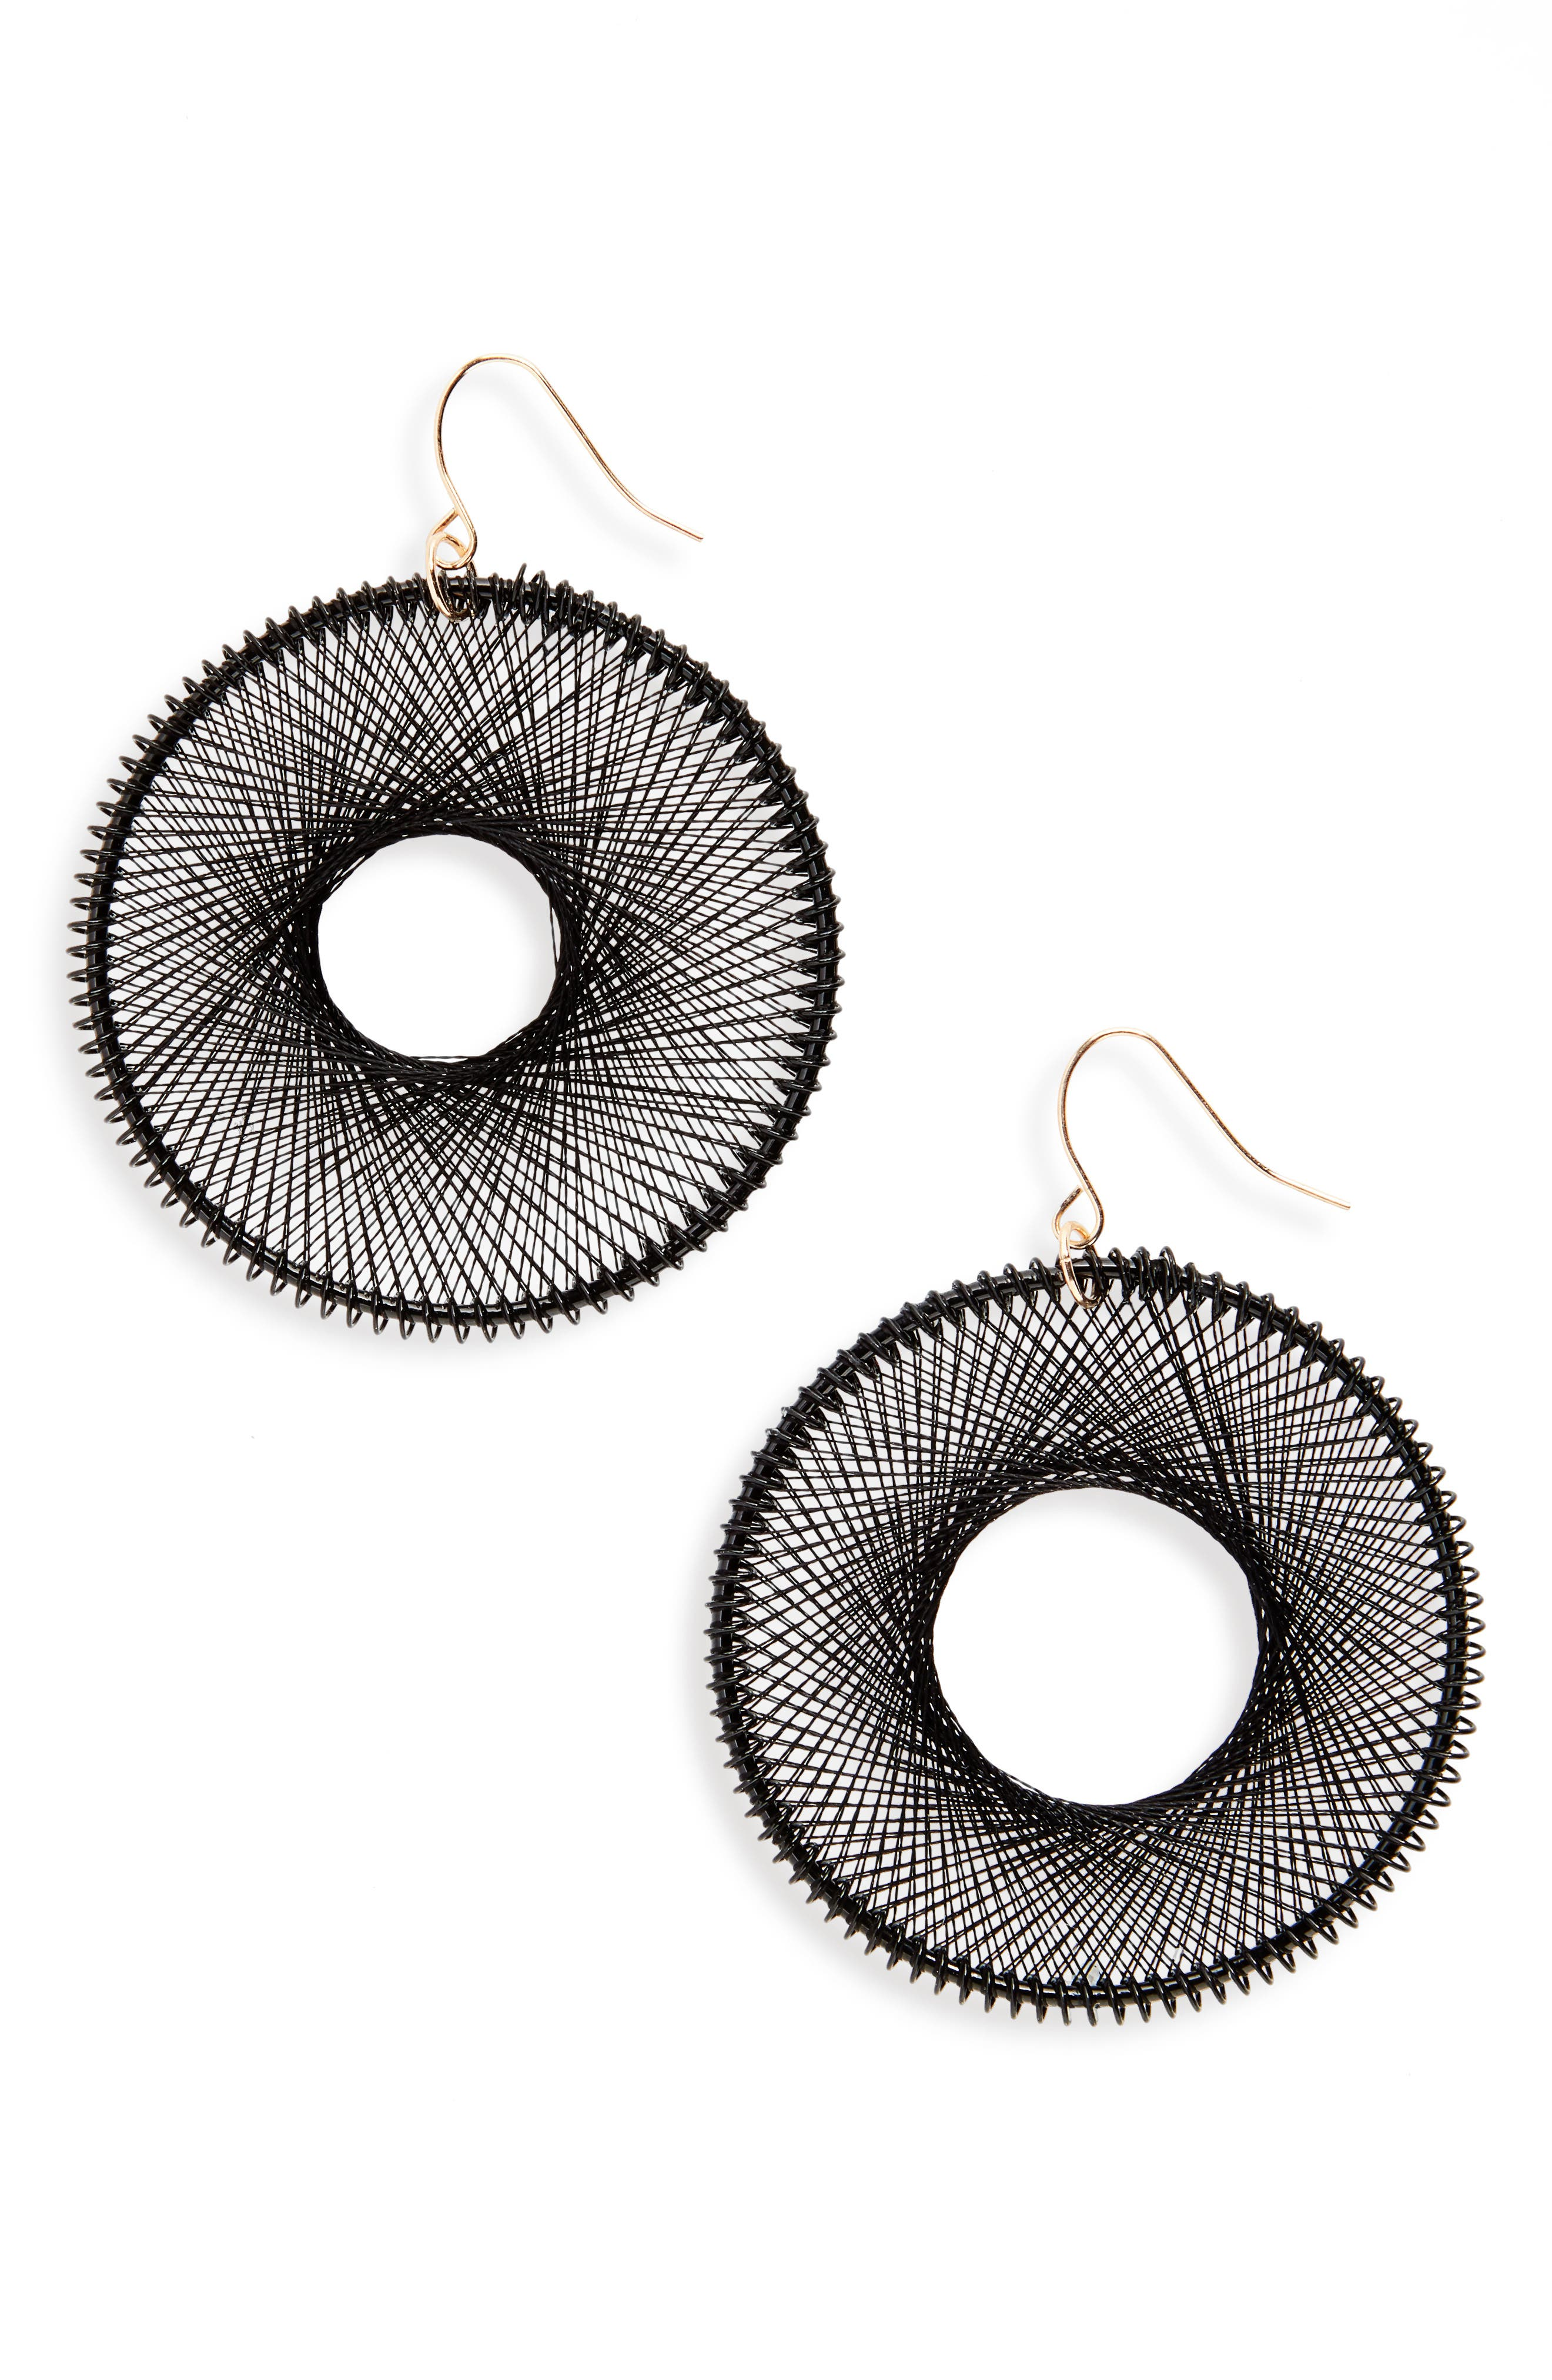 NATASHA COUTURE Natasha Silk Thread Hoop Earrings, Main, color, 001